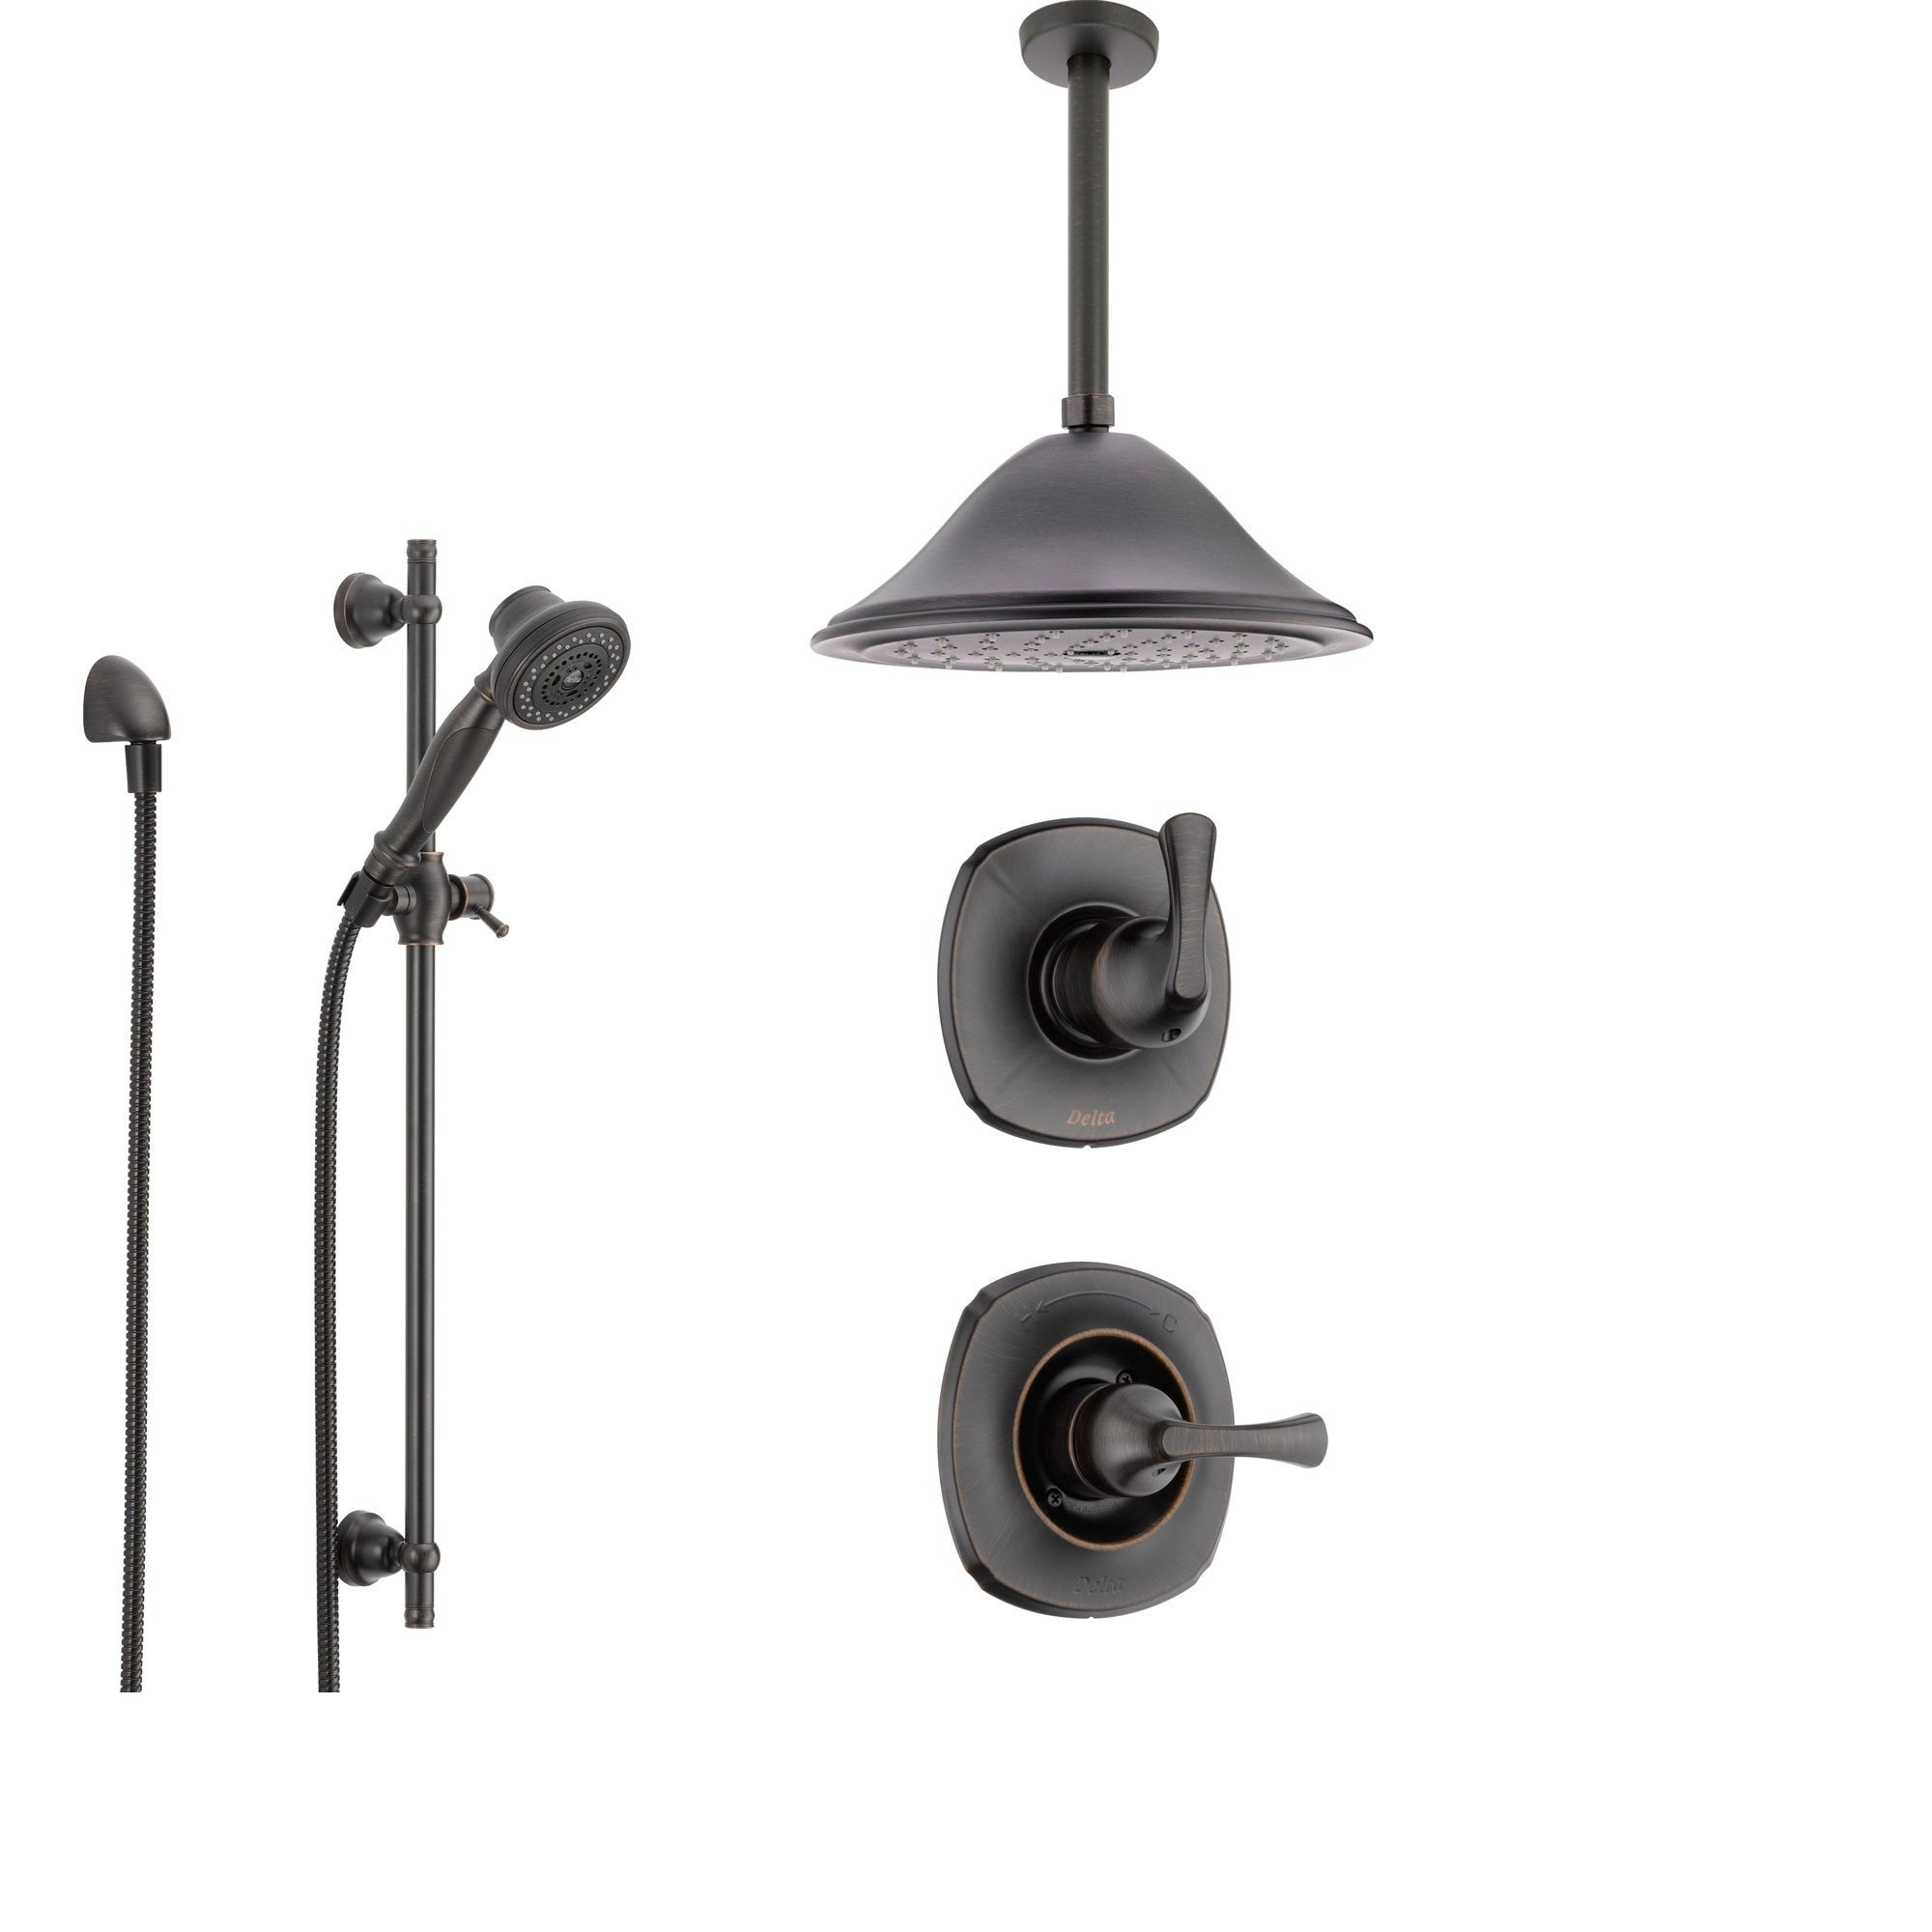 Delta Addison Venetian Bronze Shower System with Normal Shower Handle, 3-setting Diverter, Large Ceiling Mount Rain Shower Head, and Handheld Shower SS149282RB